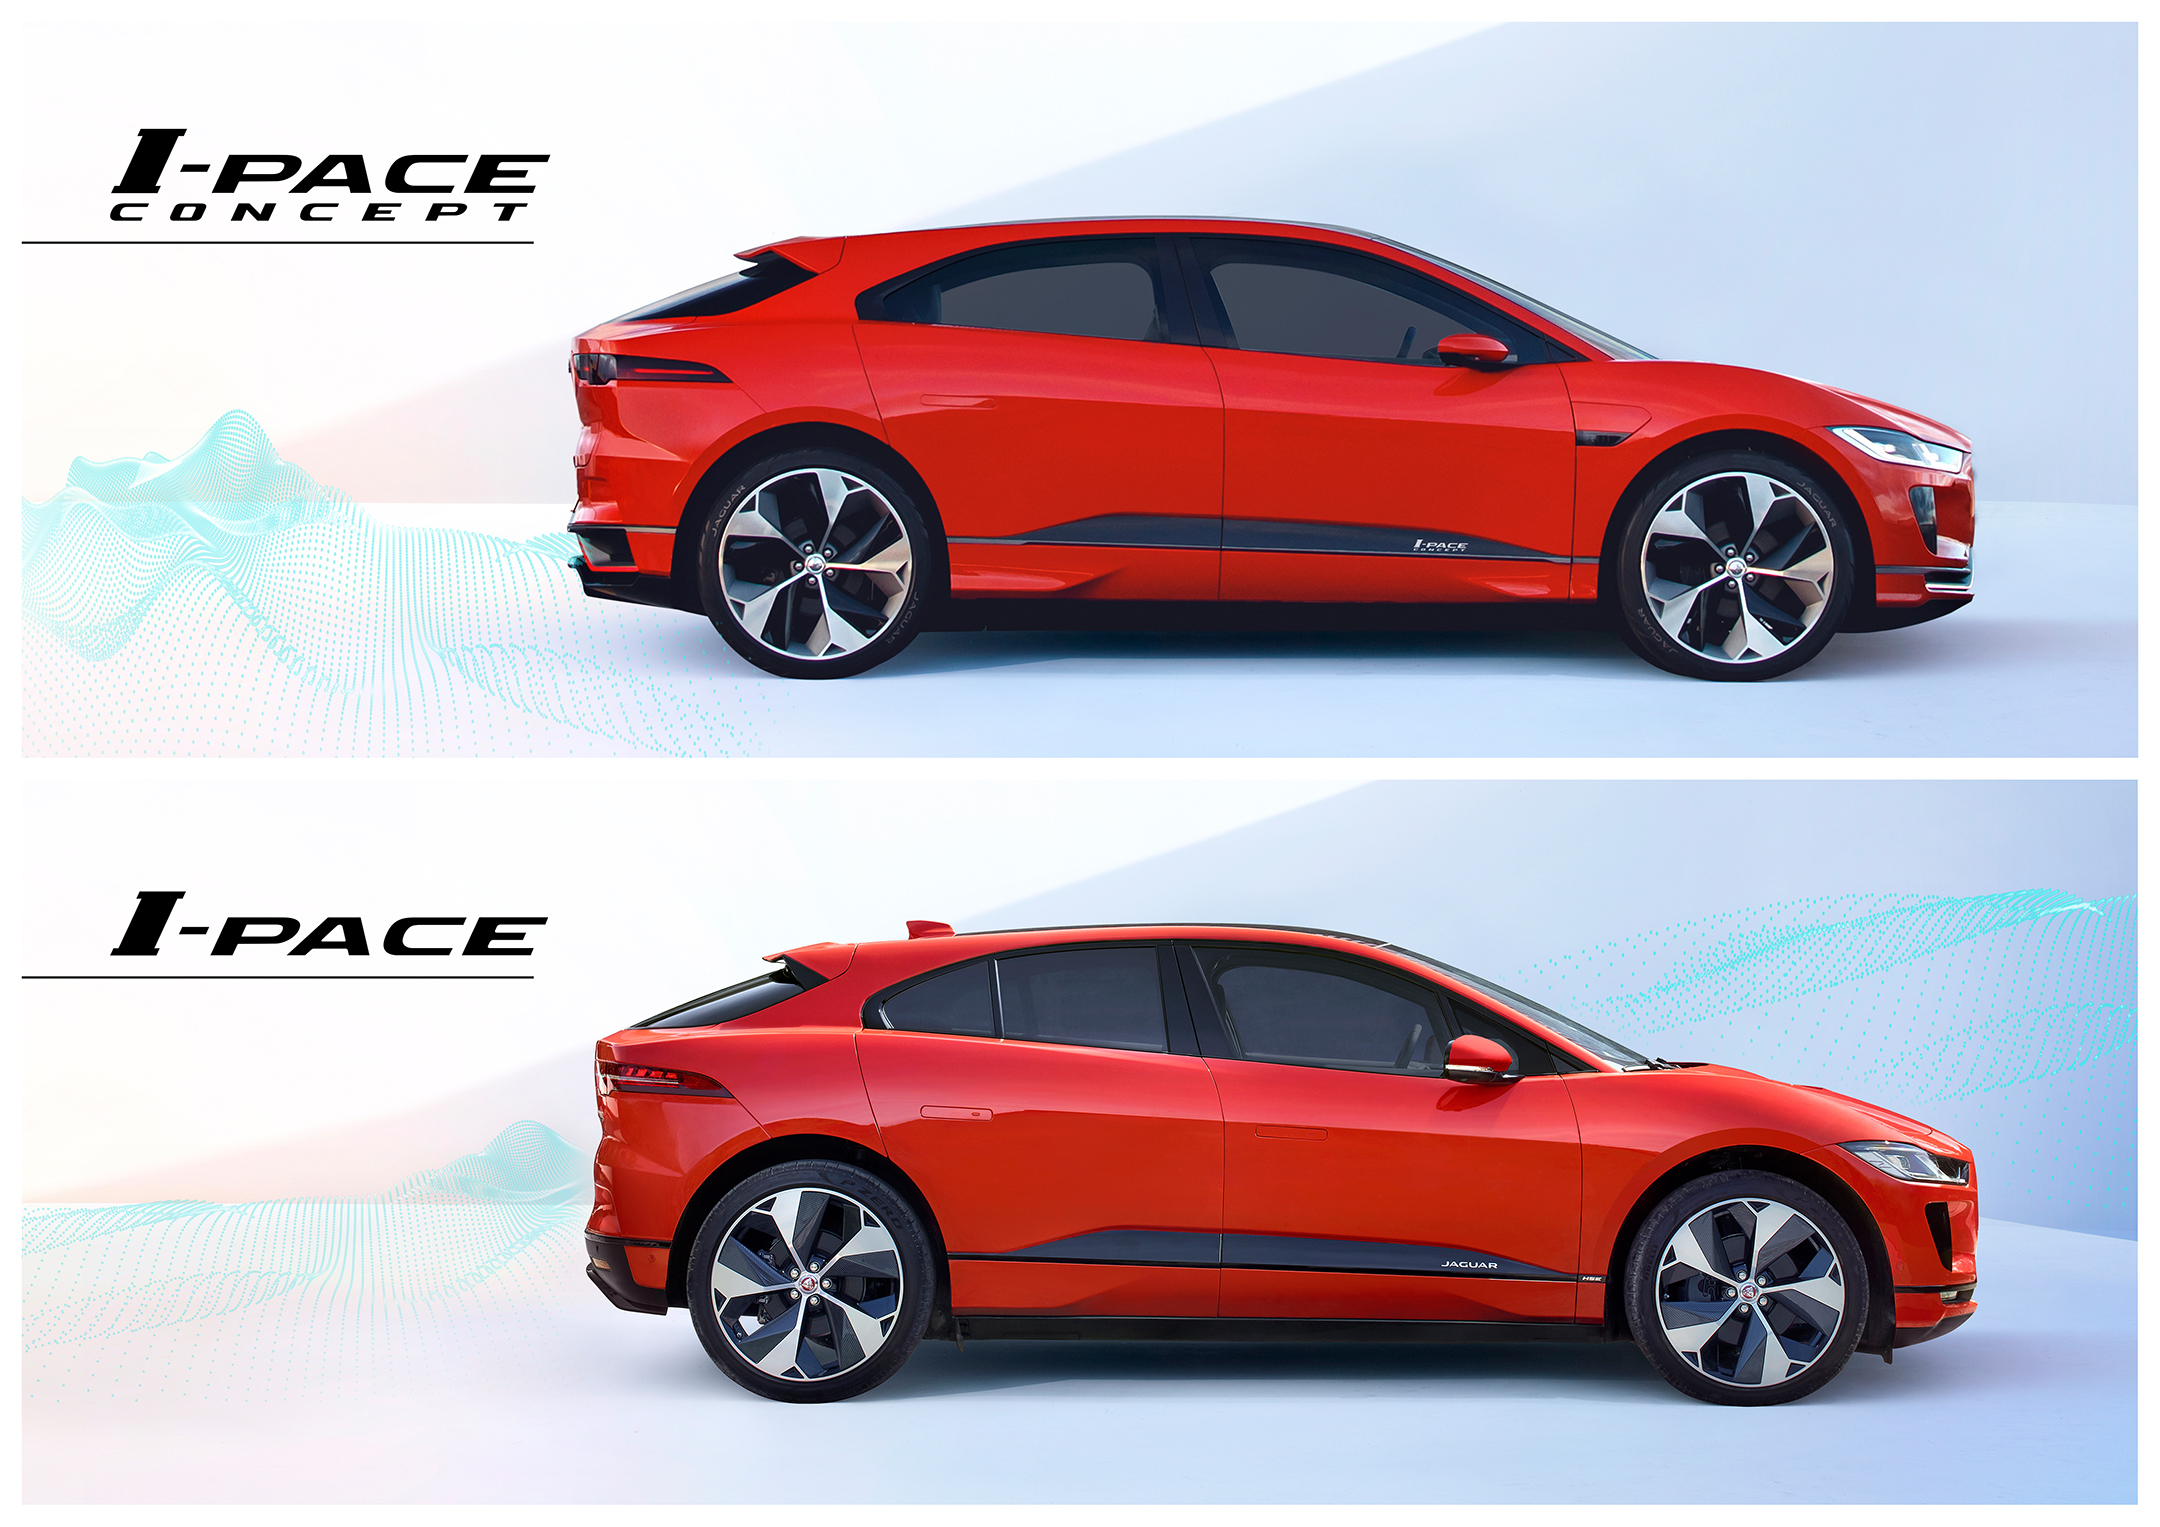 Jaguar I-PACE - 2018 - concept - production